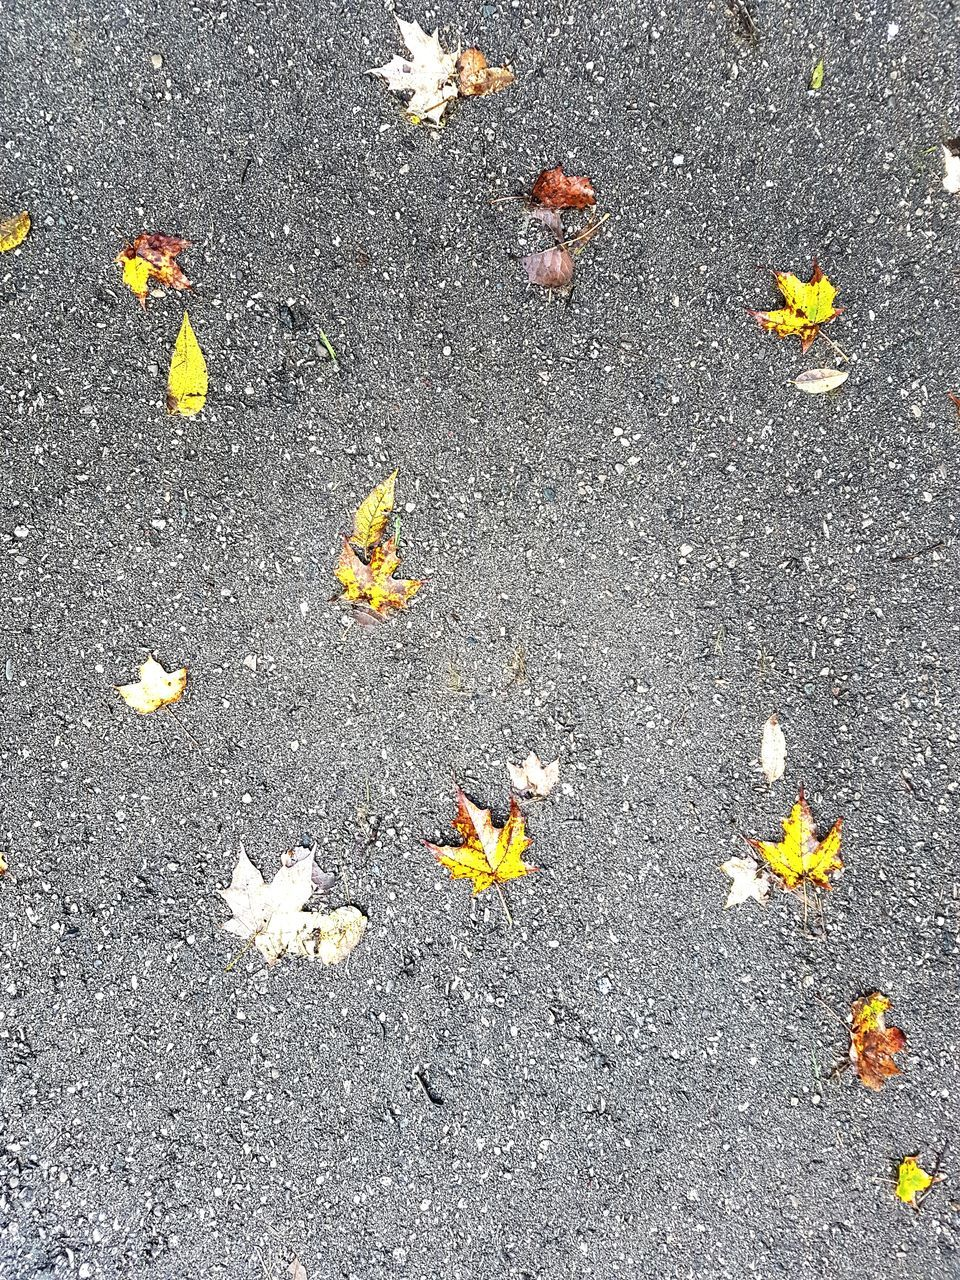 leaf, autumn, high angle view, no people, fallen, outdoors, nature, day, change, flower, close-up, beauty in nature, fragility